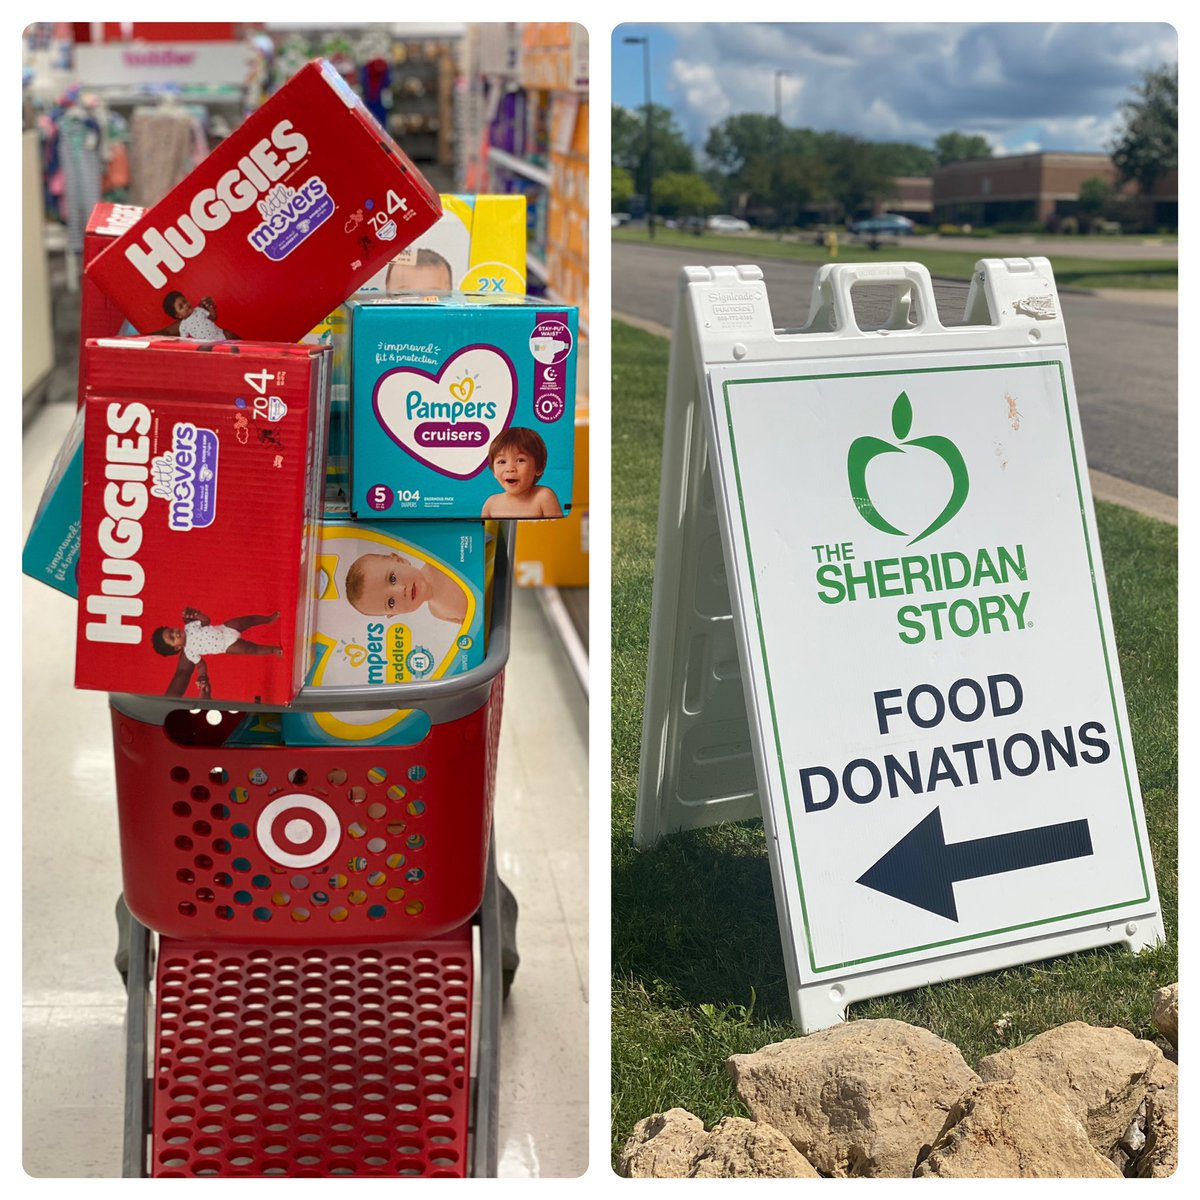 Diaper duty! This morning, I dropped off a bunch of diapers and baby wipes at @SheridanStory. Feels good giving back to those in need. Thank you to everyone who donated!